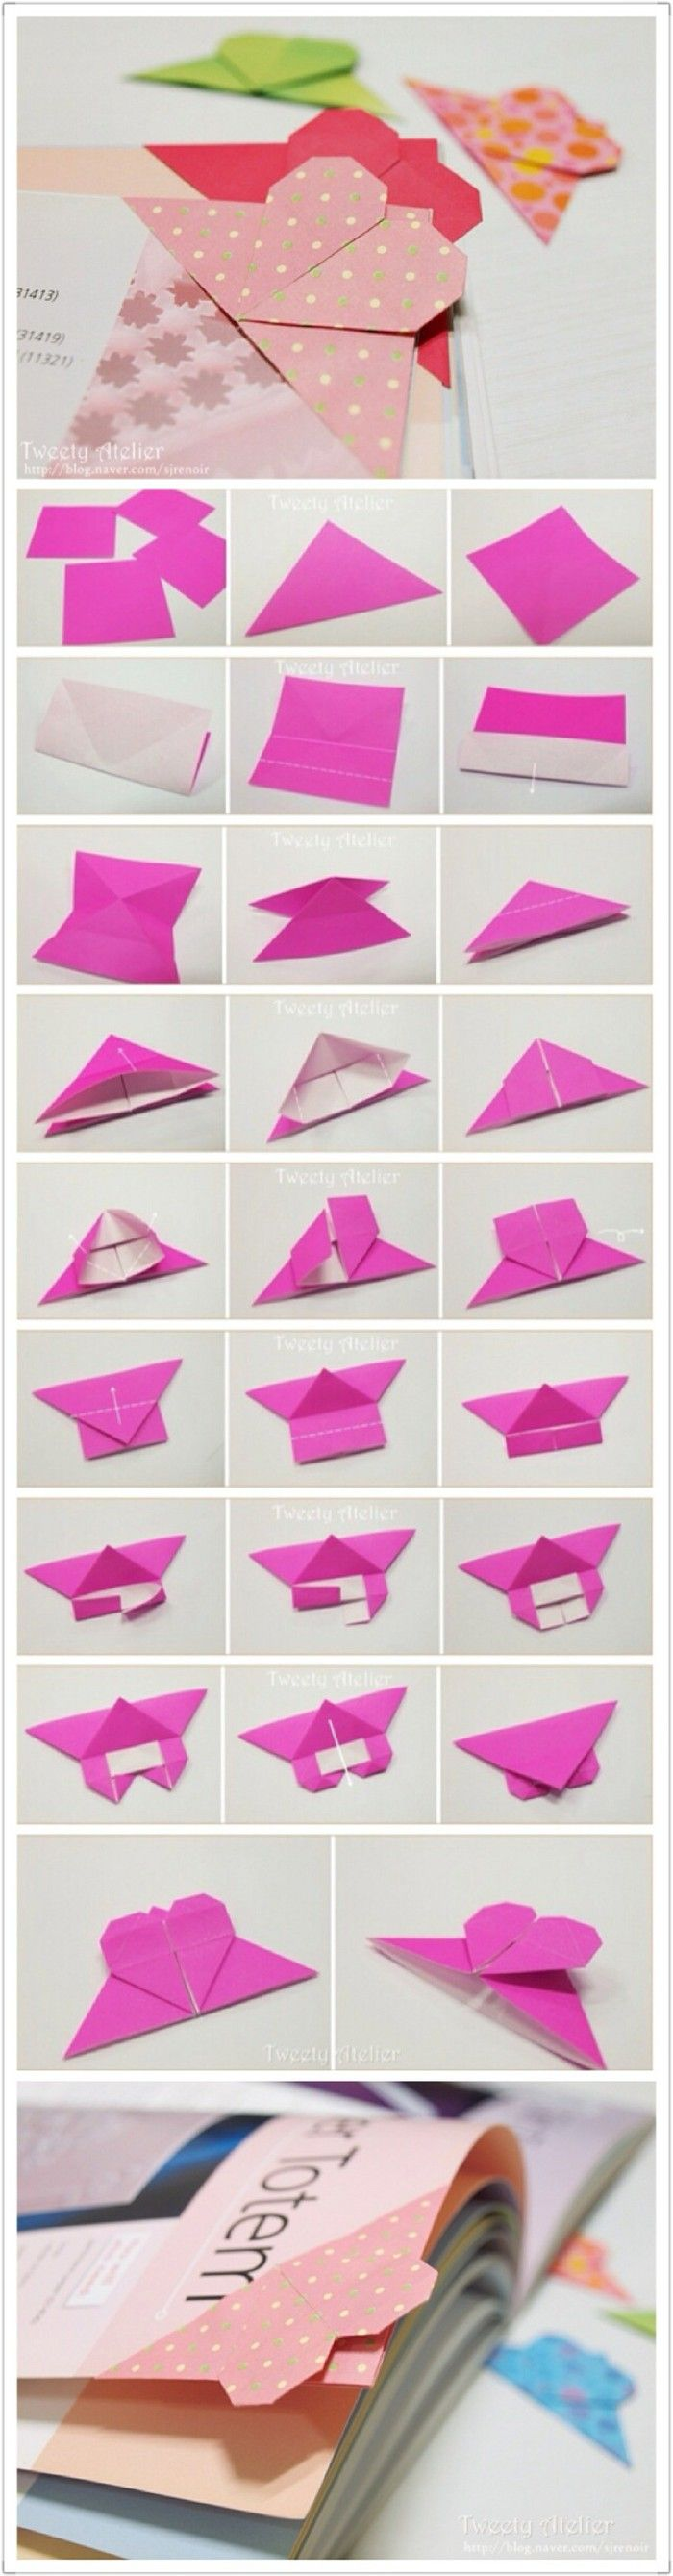 Diy craft heart-shaped origami bookmark